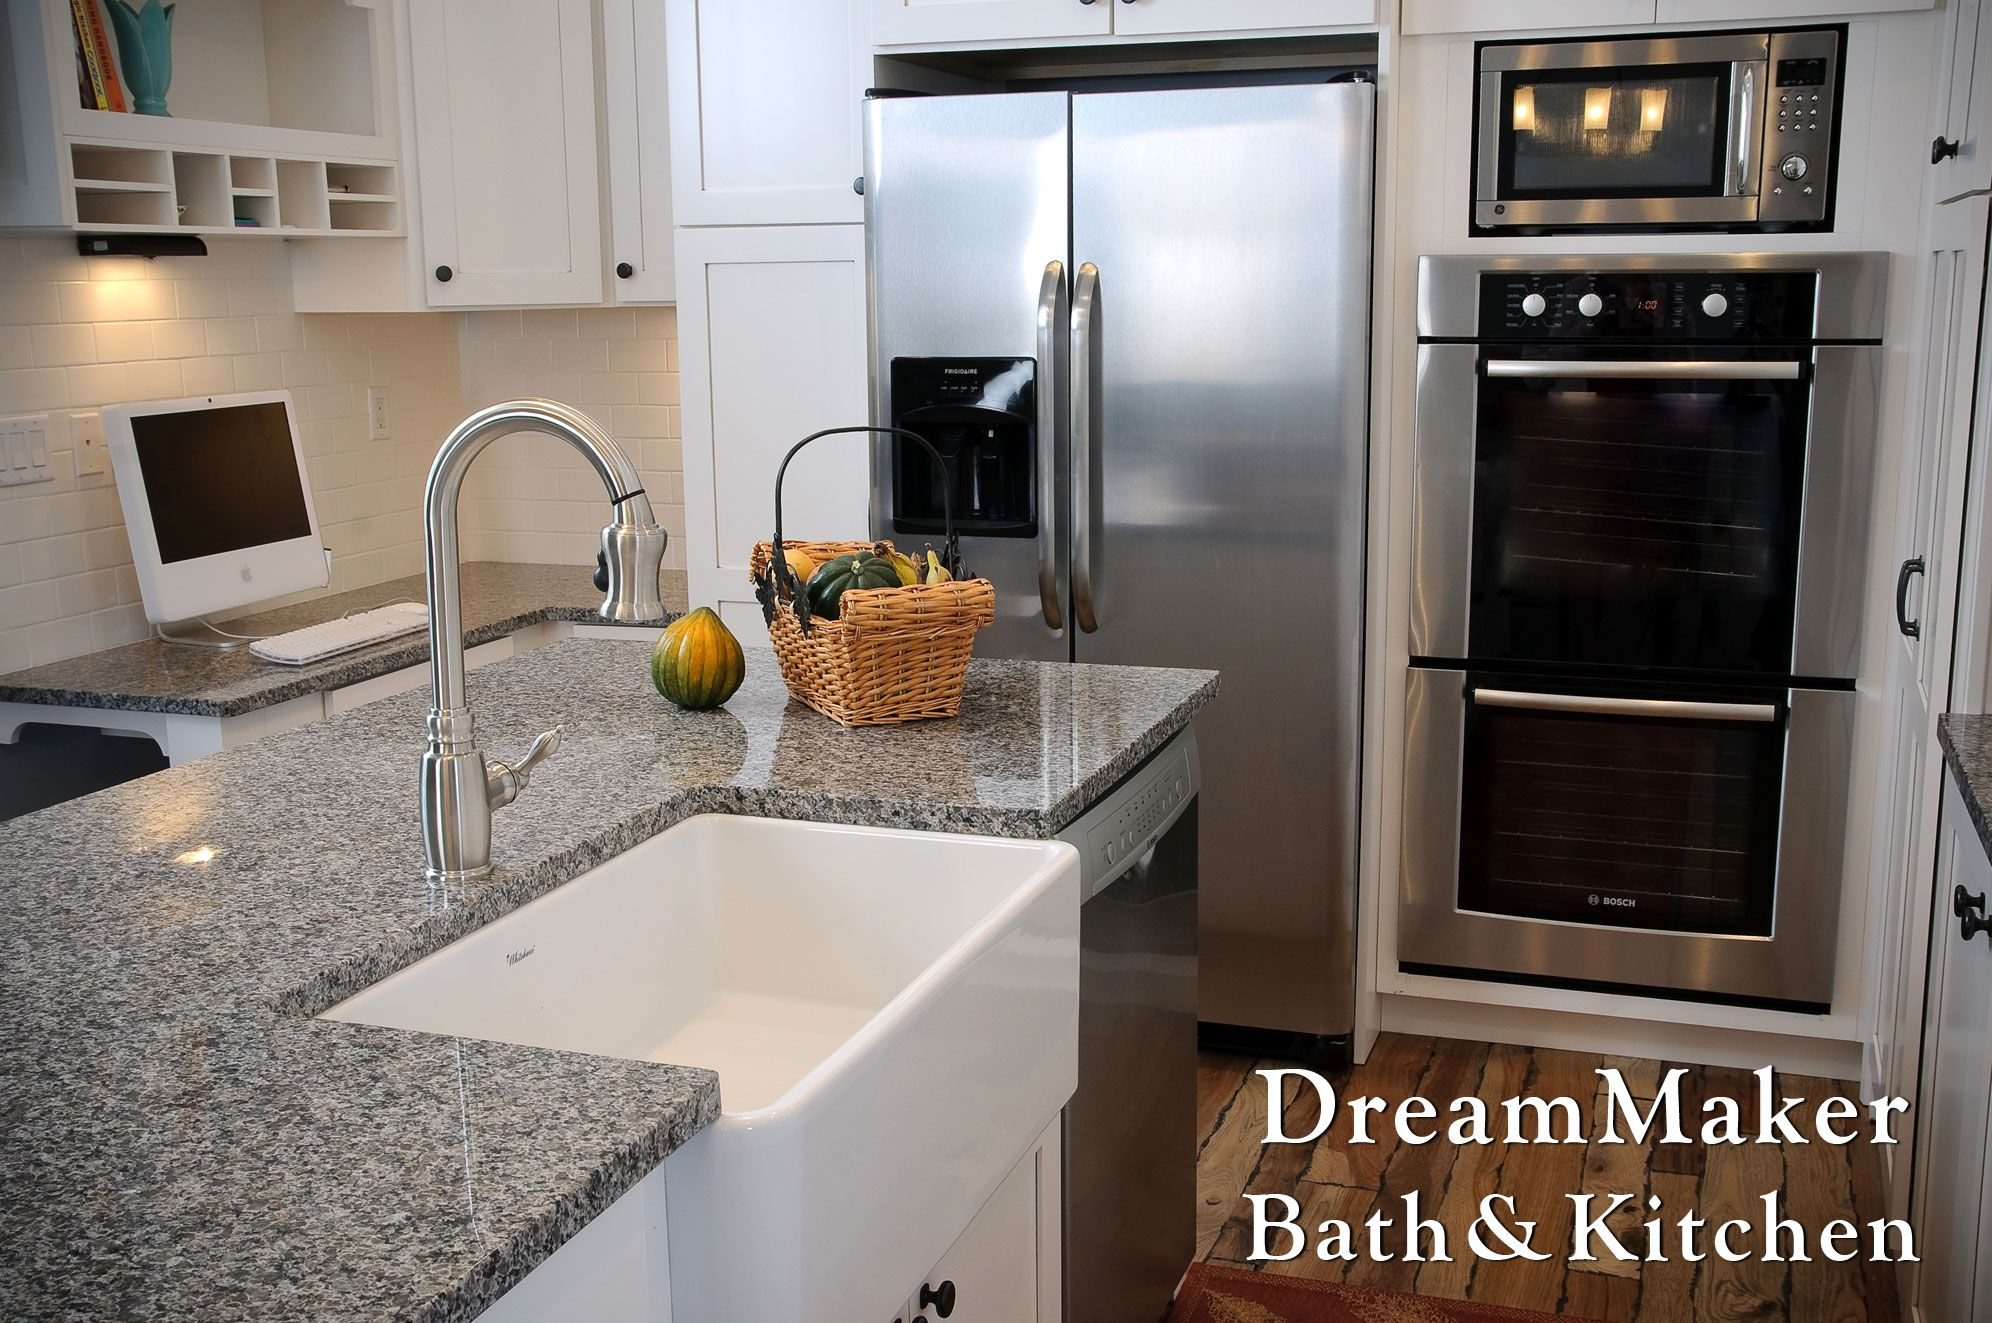 We included a nice farm sink in this kitchen remodel ...